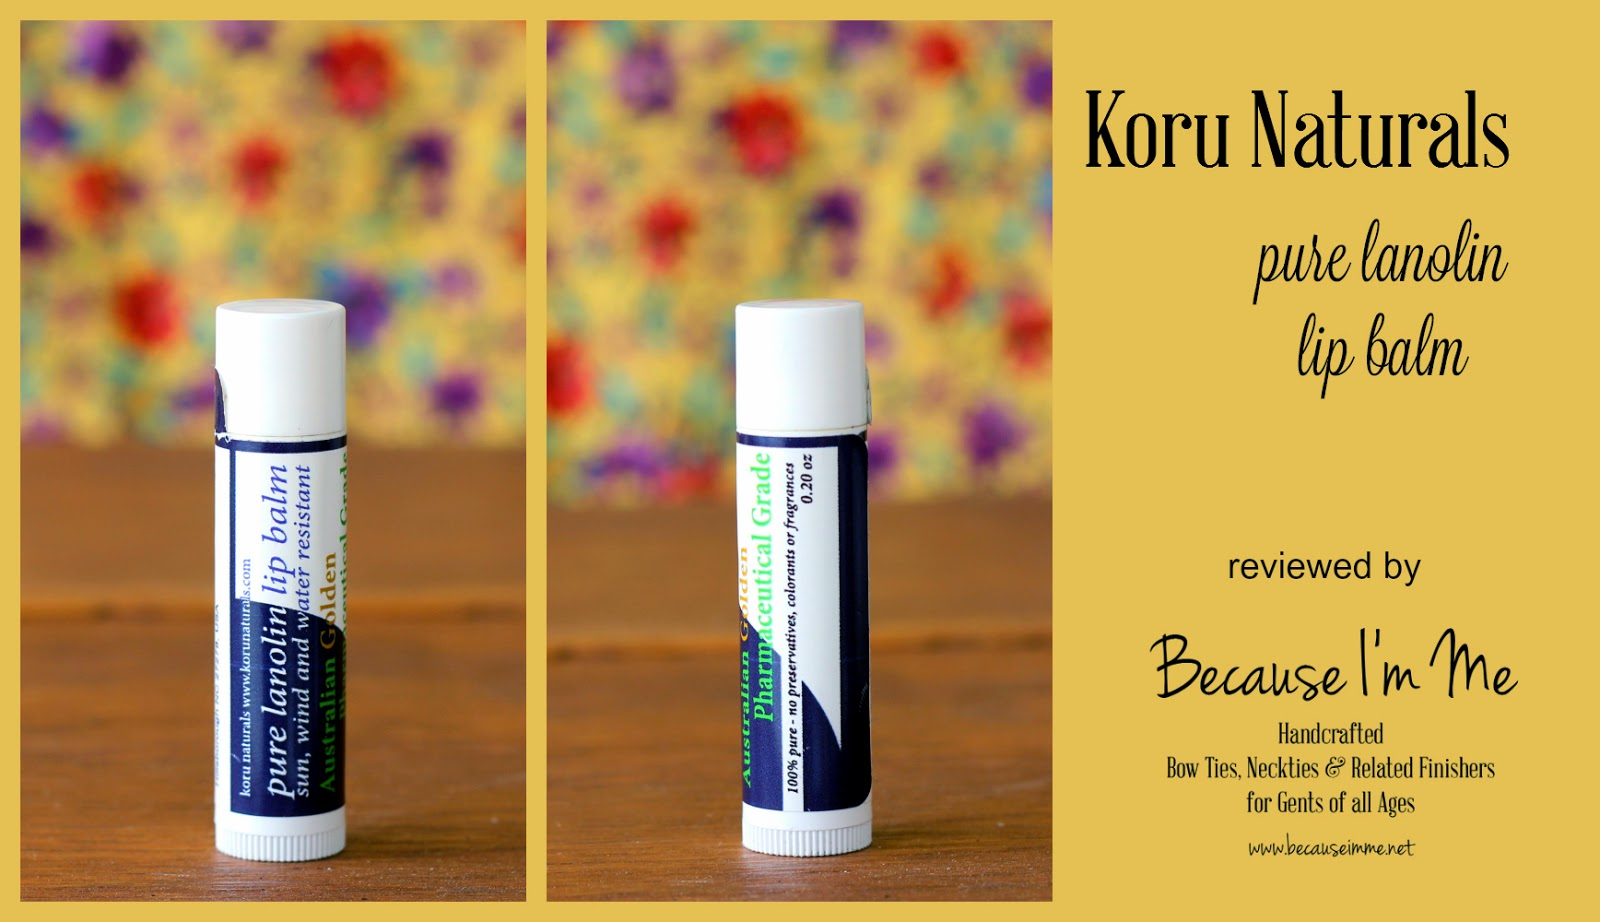 Gentle, effective, natural chapped and irritated lip relief: Pure Lanolin Lip Balm by Koru Naturals, reviewed at Because I'm Me